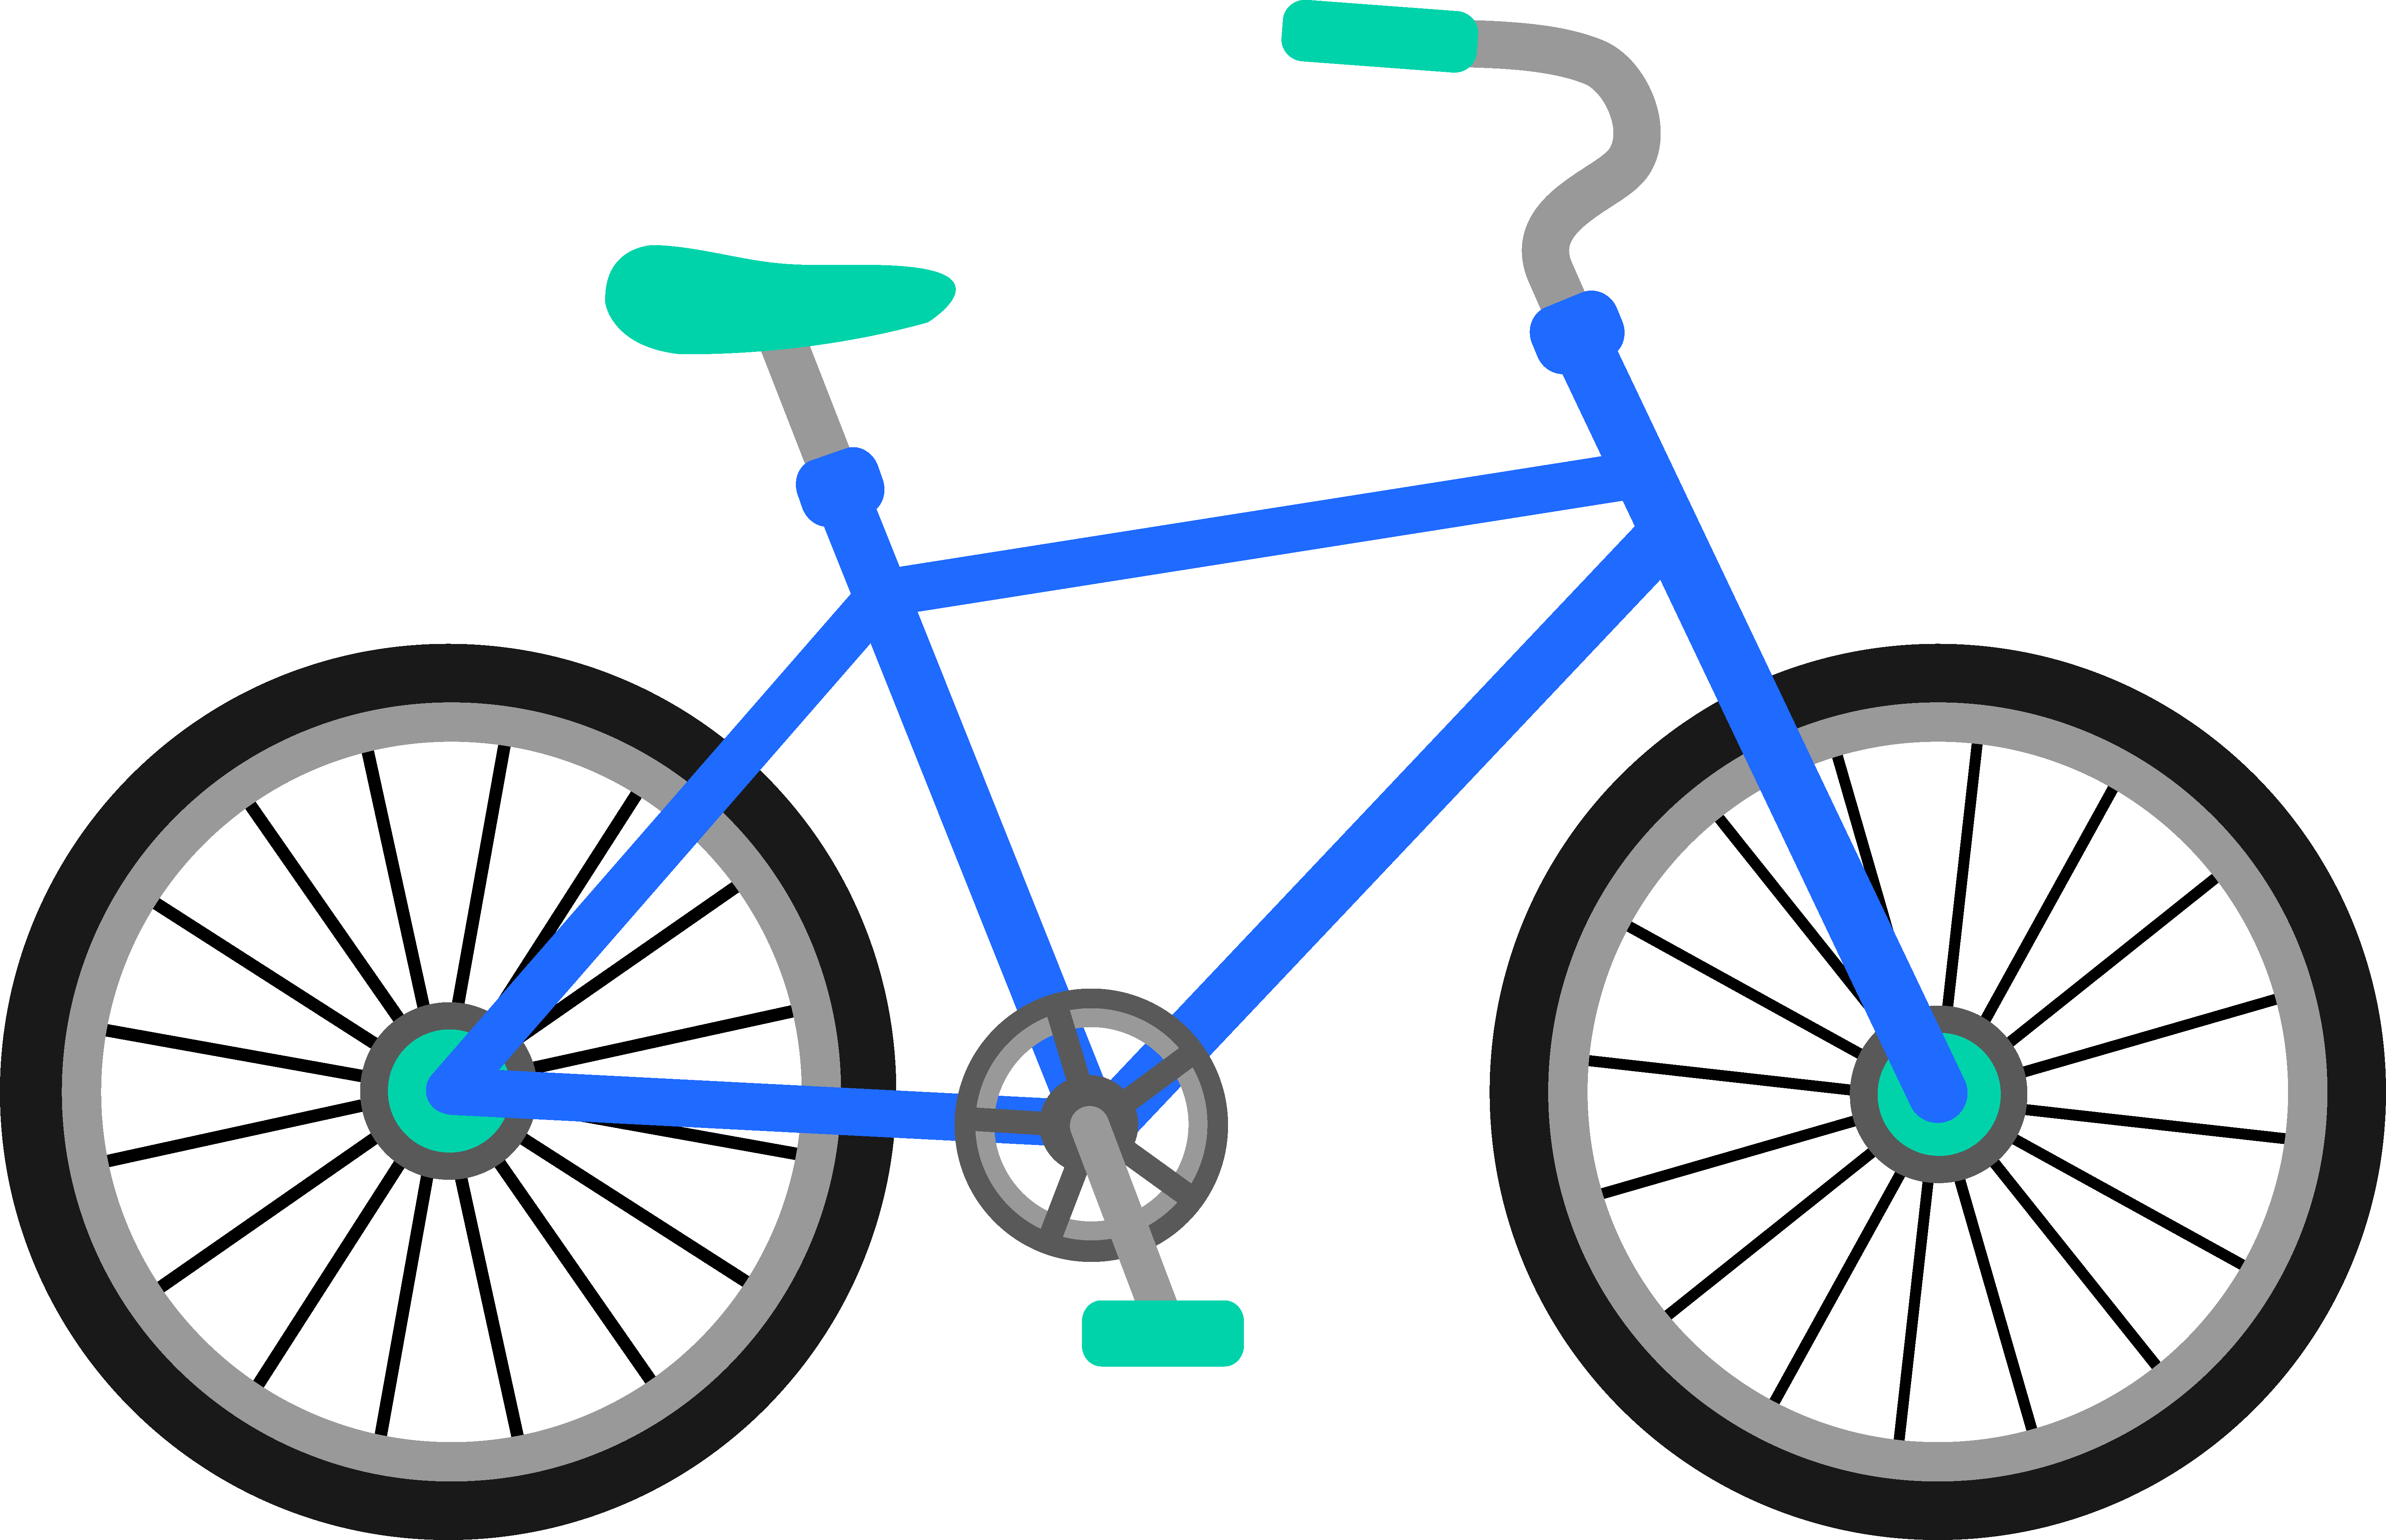 Bike clipart transparent picture library stock Clip Art: Transportation Bicycle Drawing Clip art - Bike Images png ... picture library stock